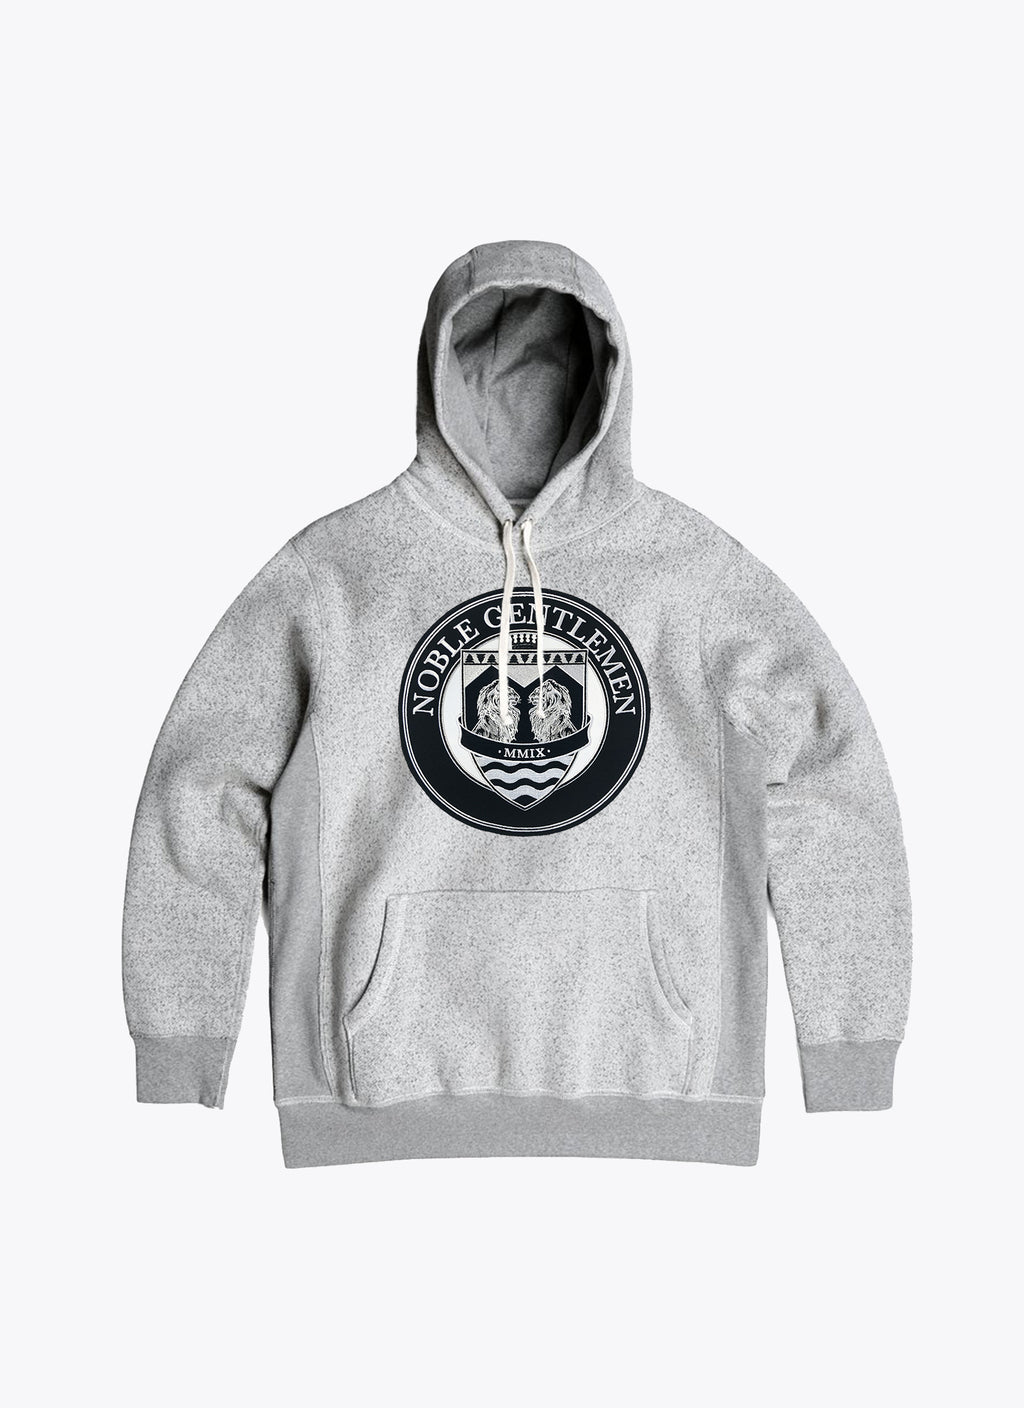 NGT Crest Hoody - Heather Grey